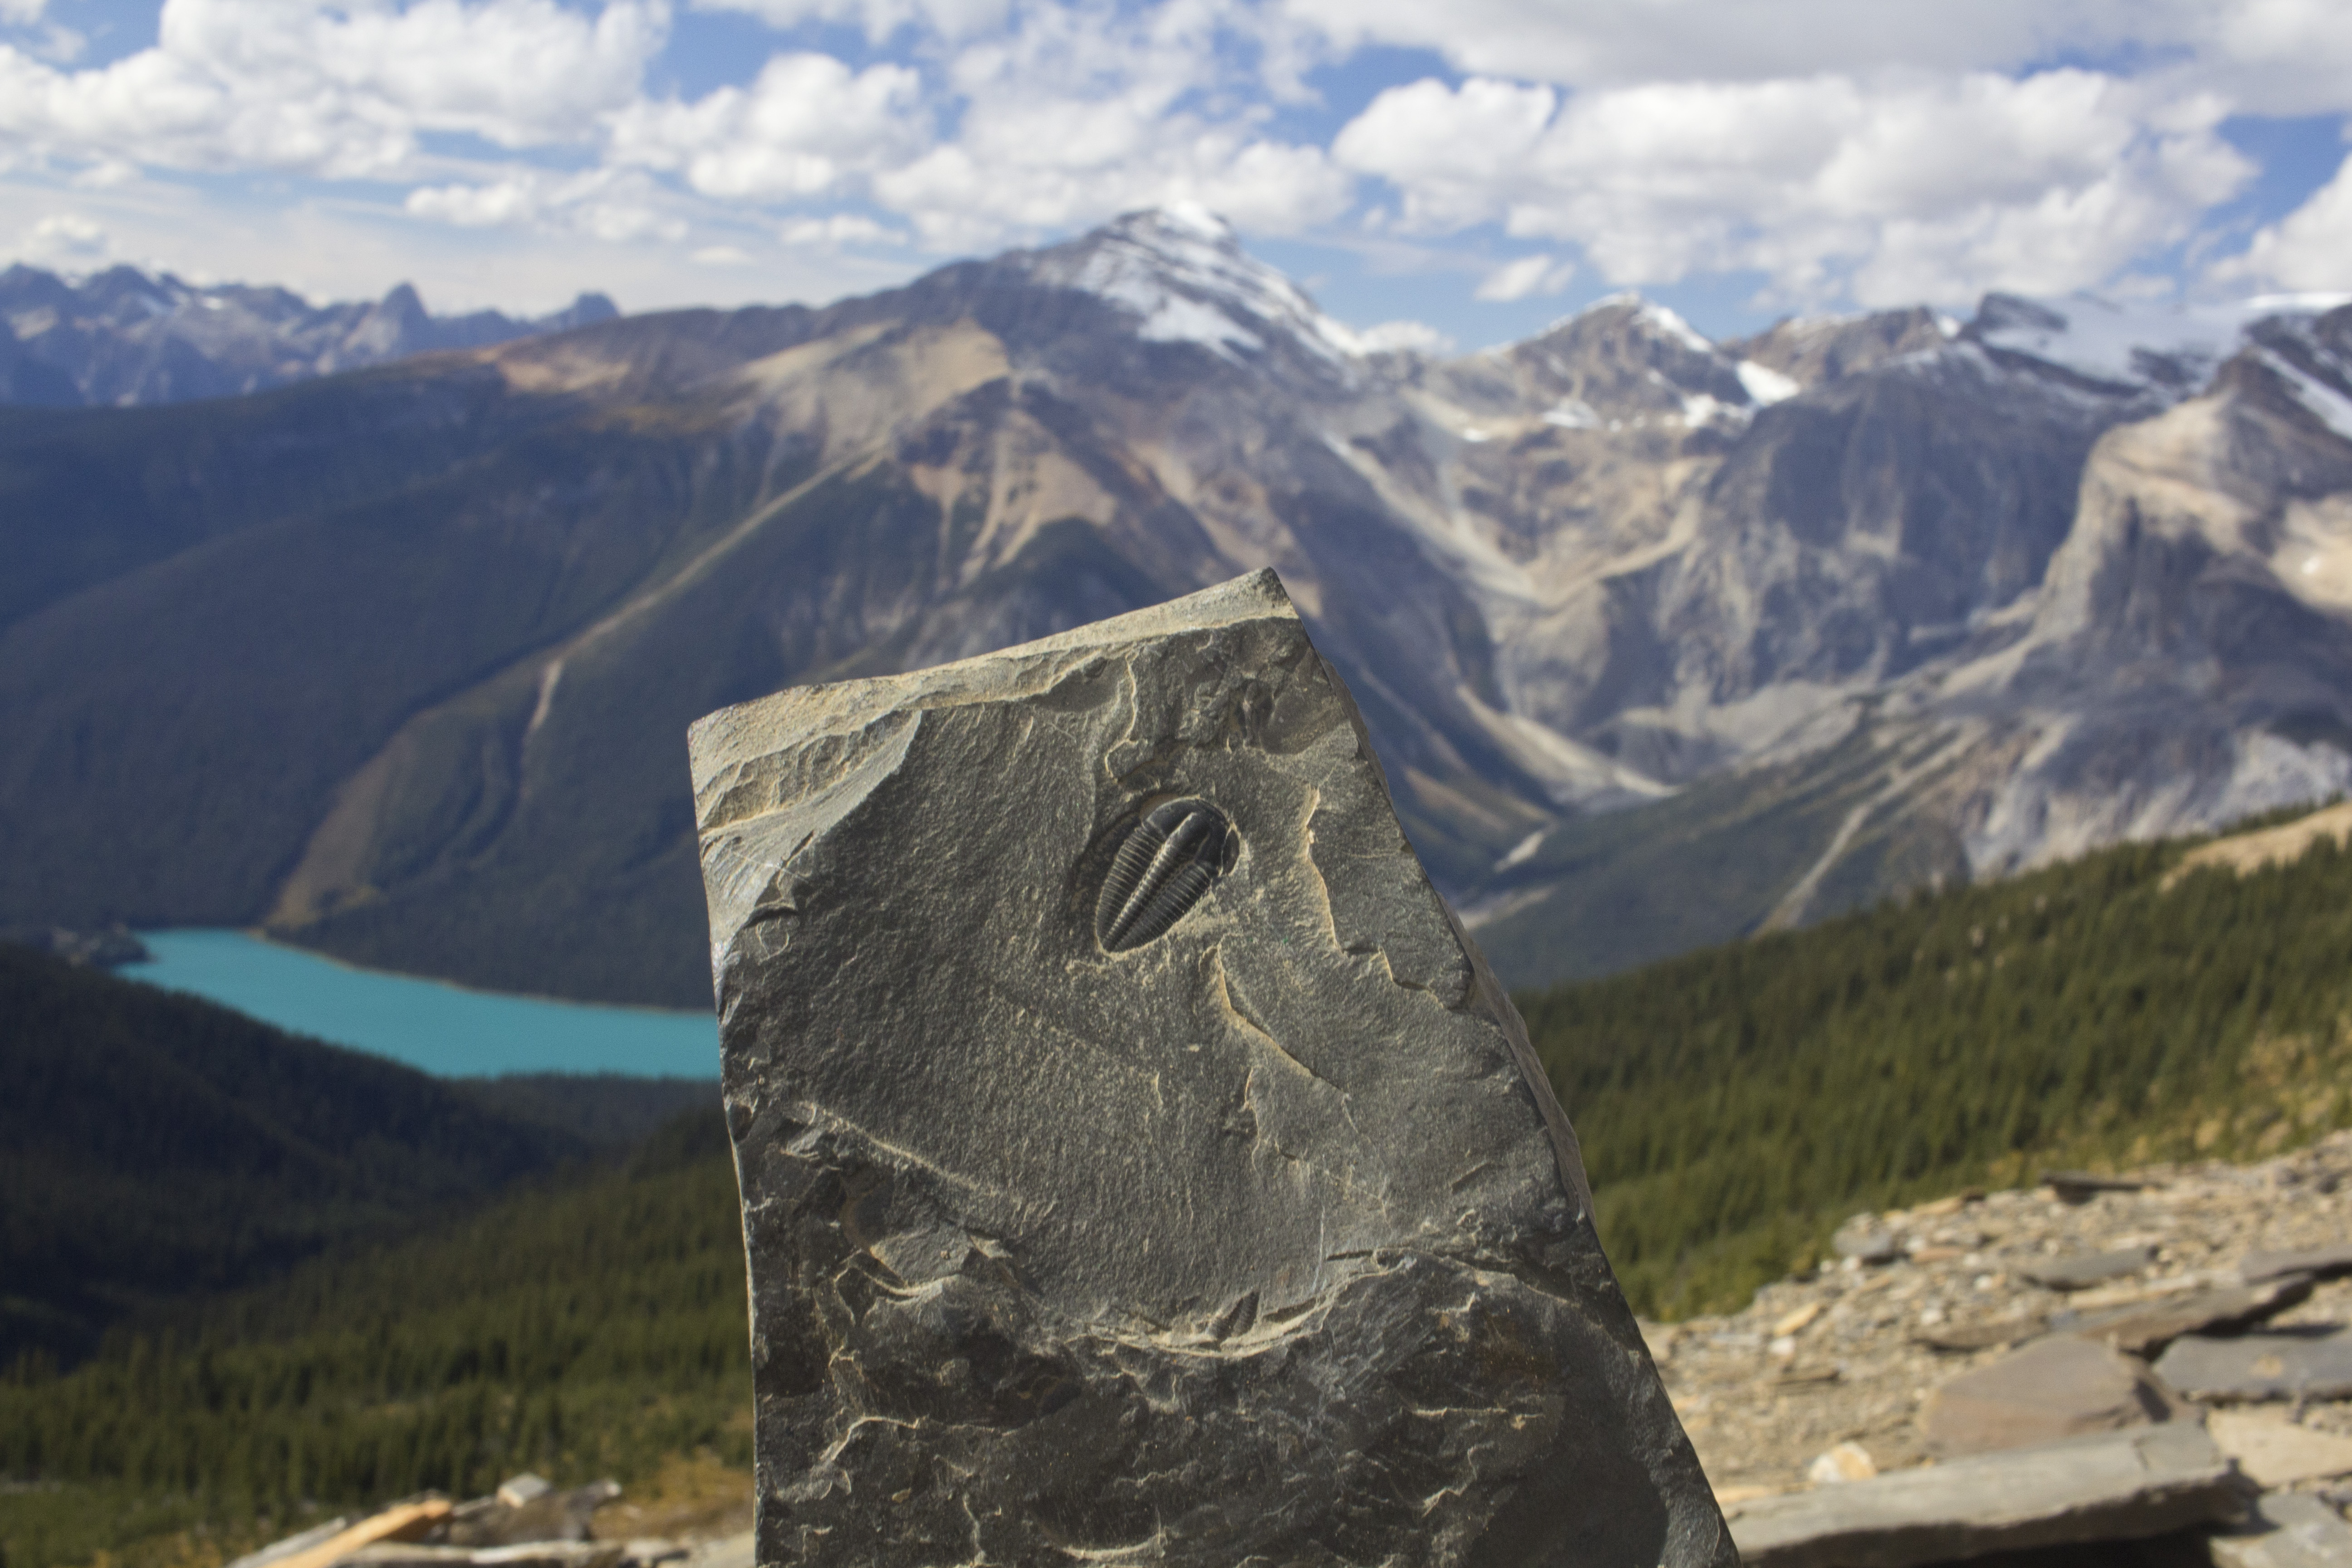 Burgess Shale fossil and lake